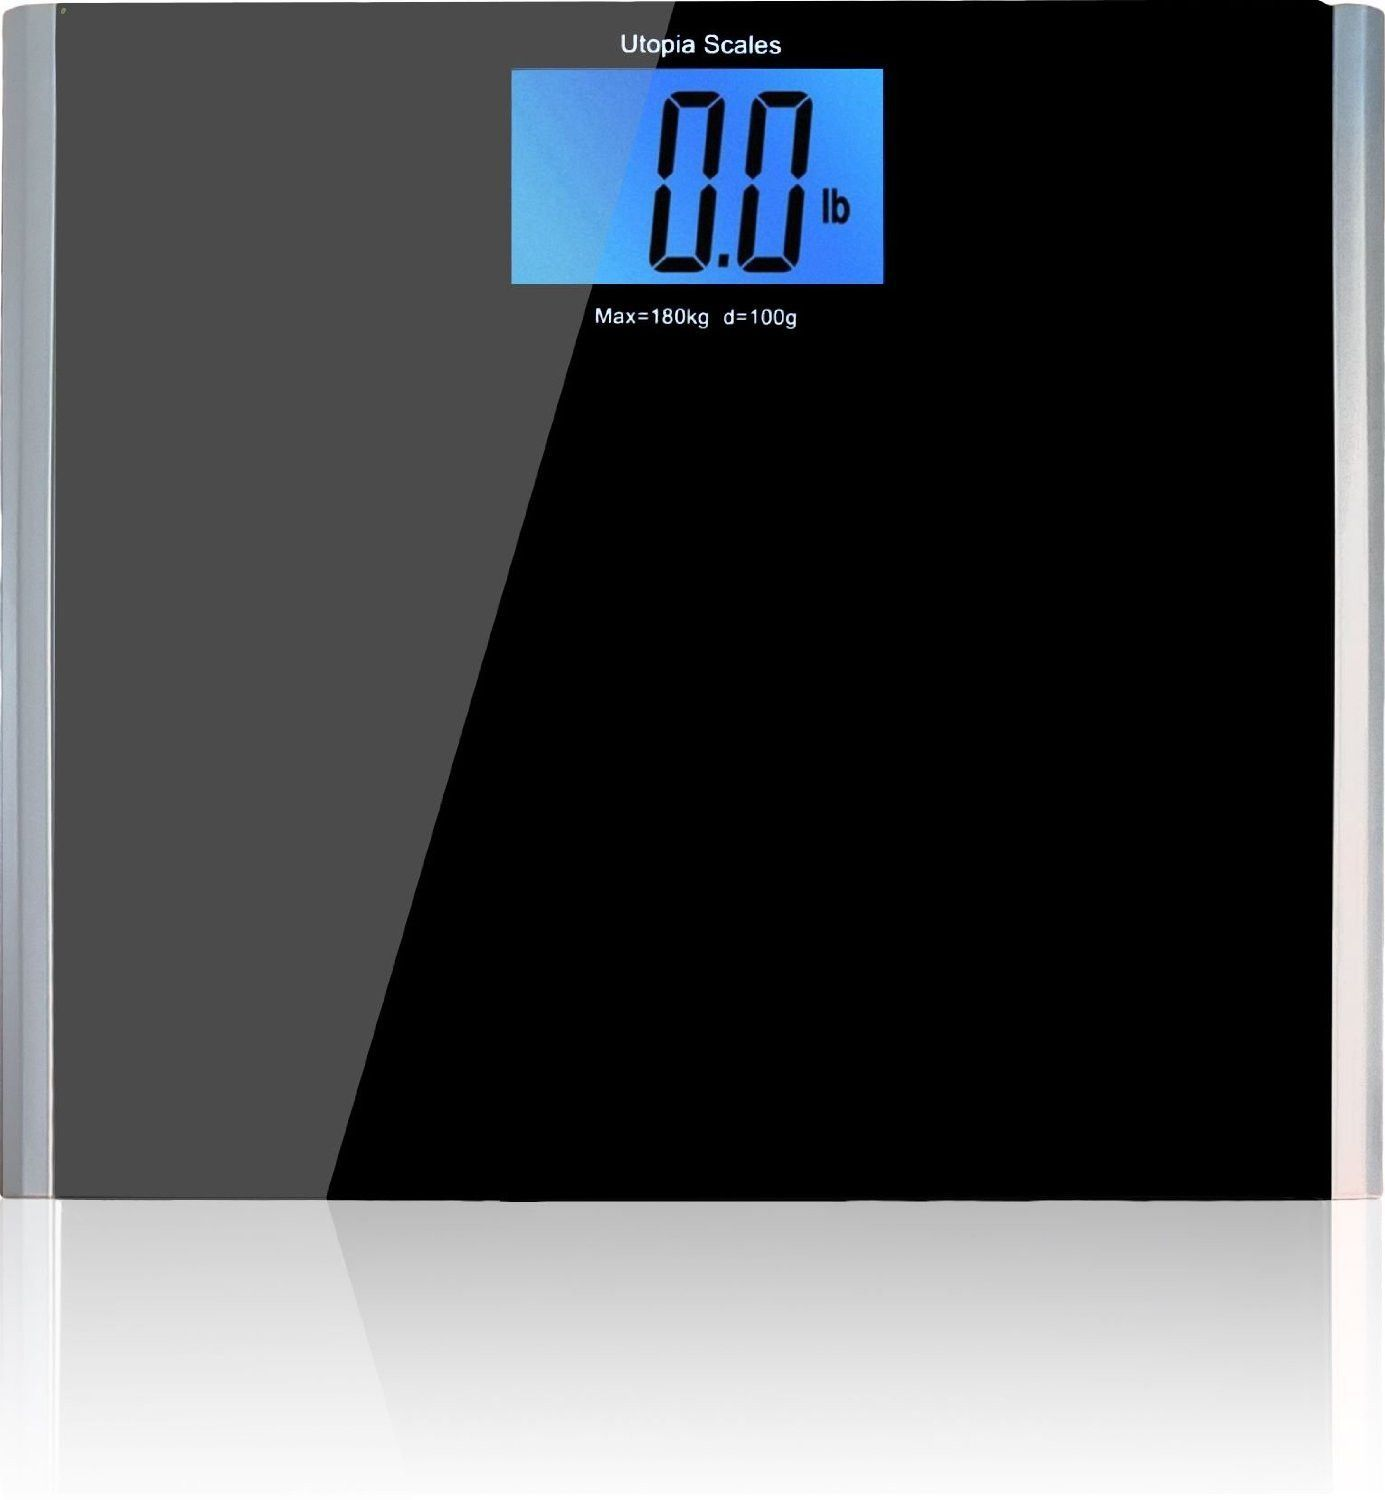 B Top Rated Bathroom Scale And Weight Maintenance Tool The Utopia Tempered Gl